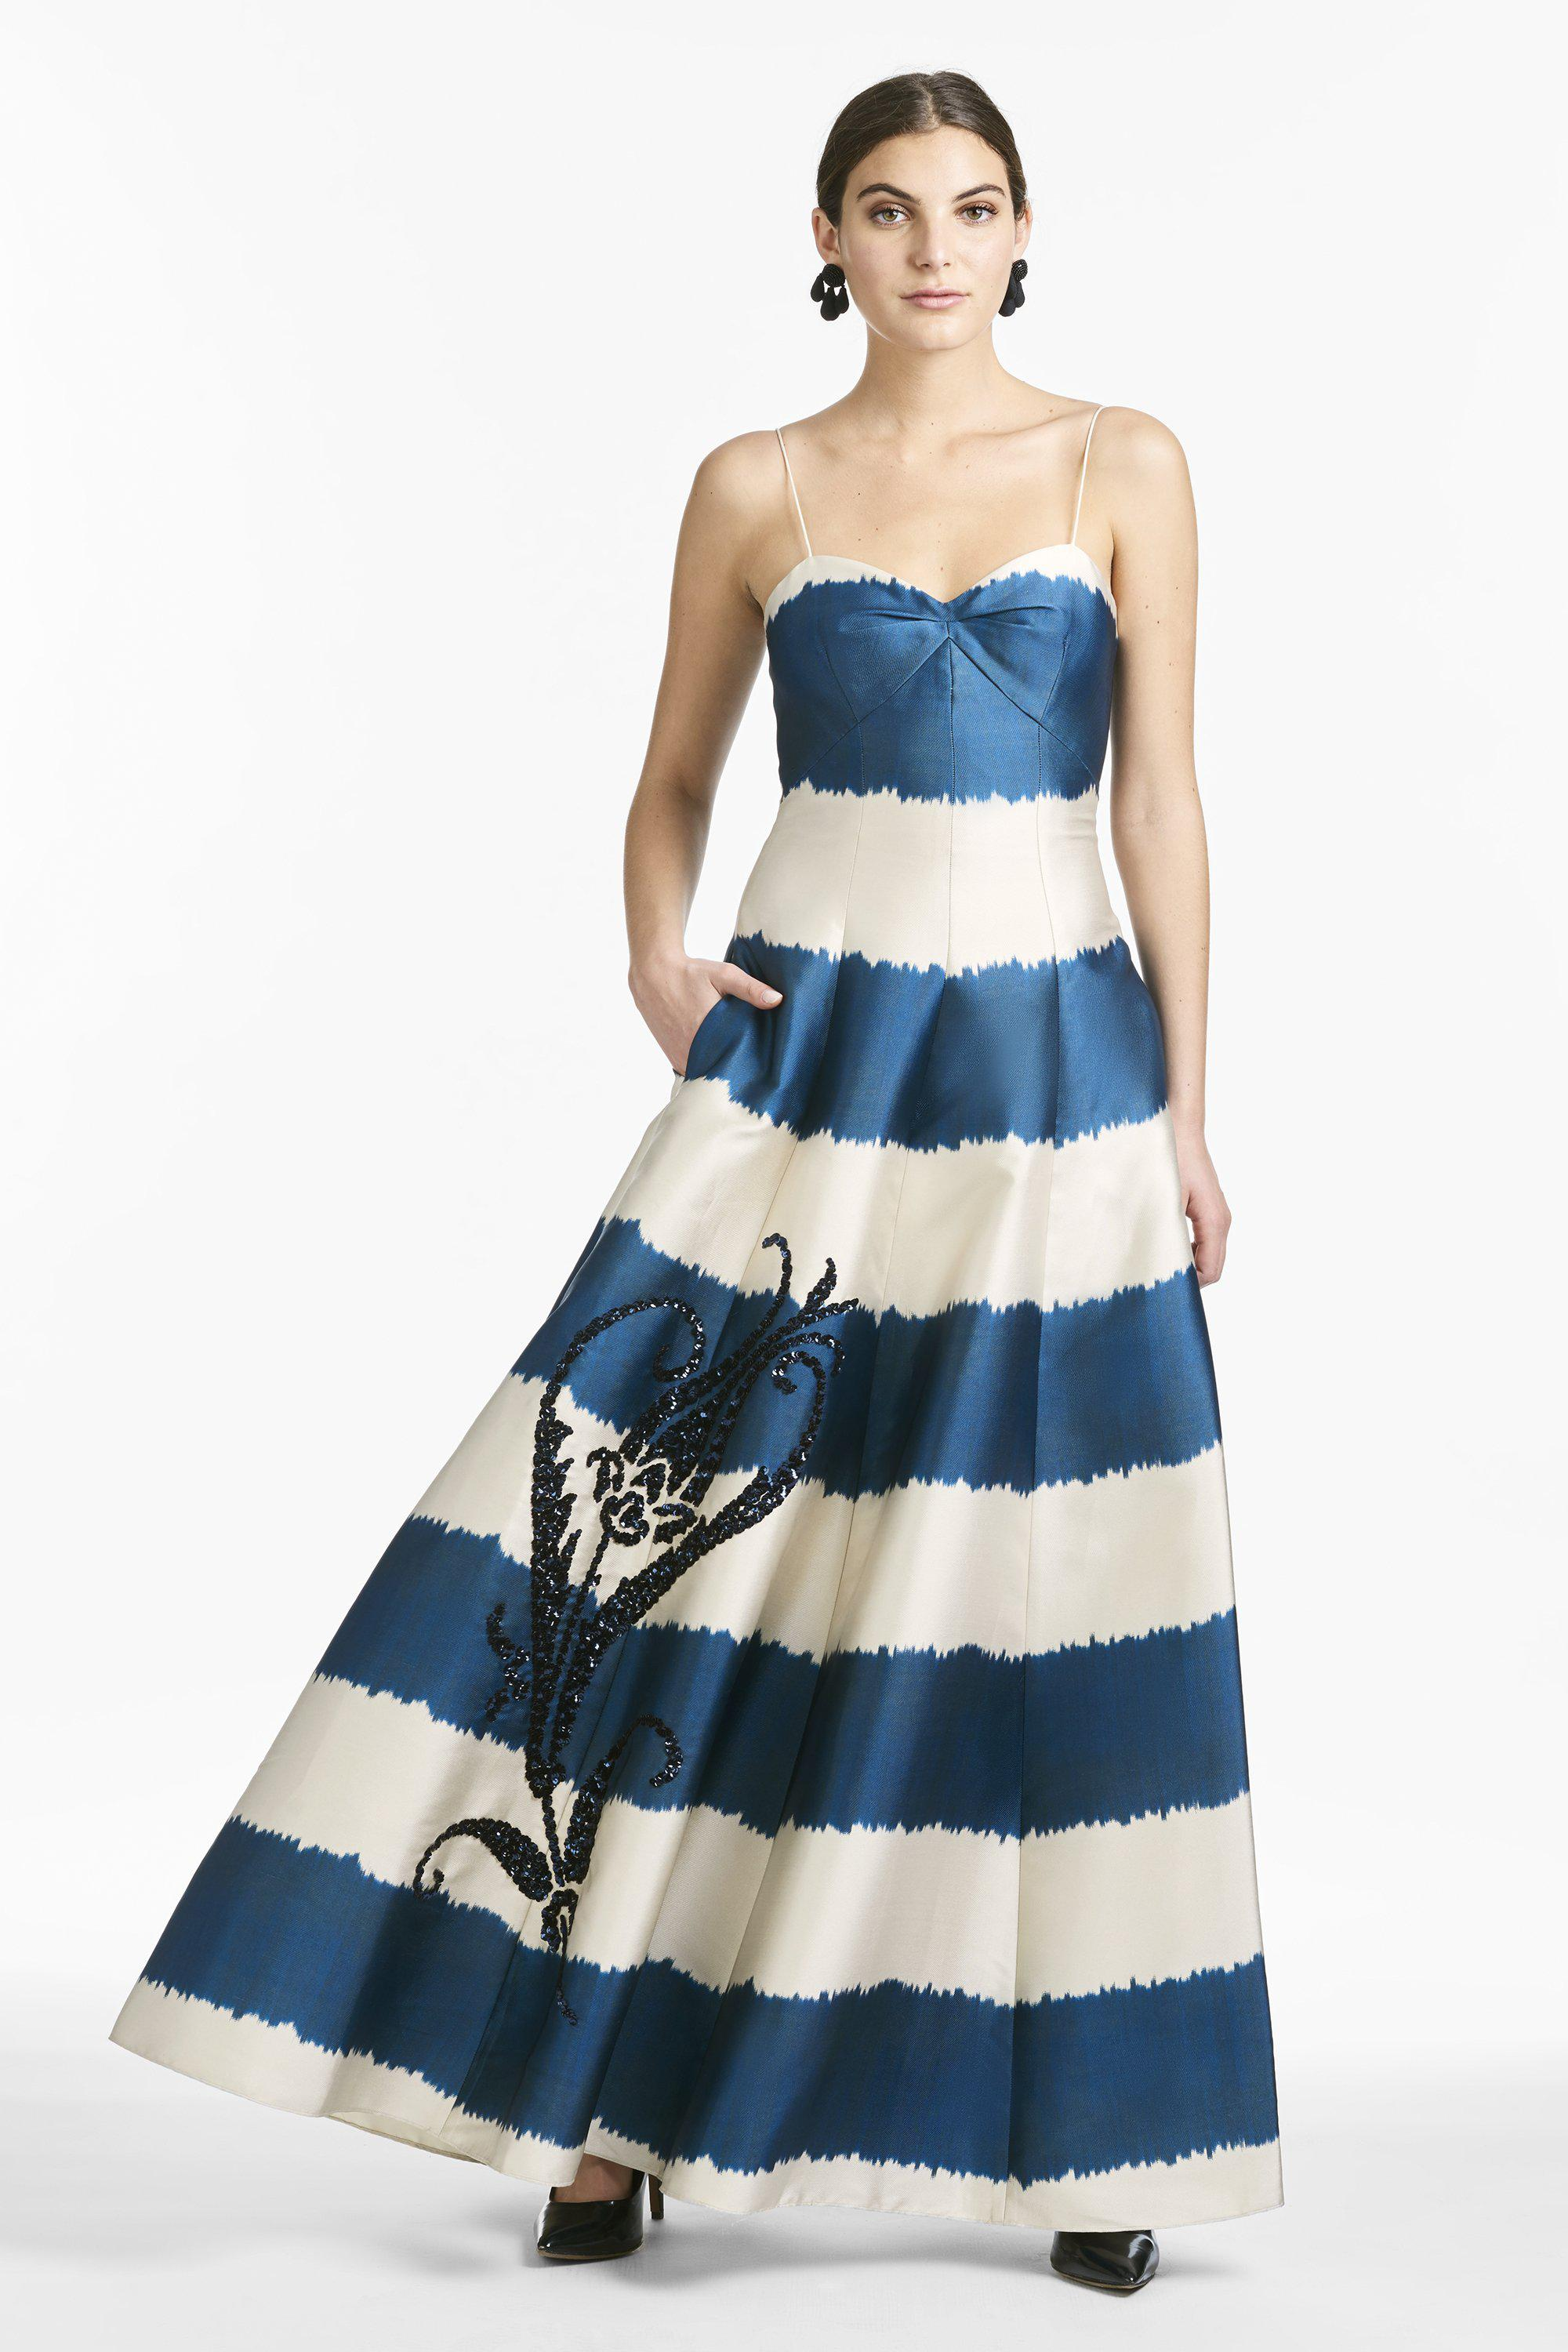 Tophane Gown